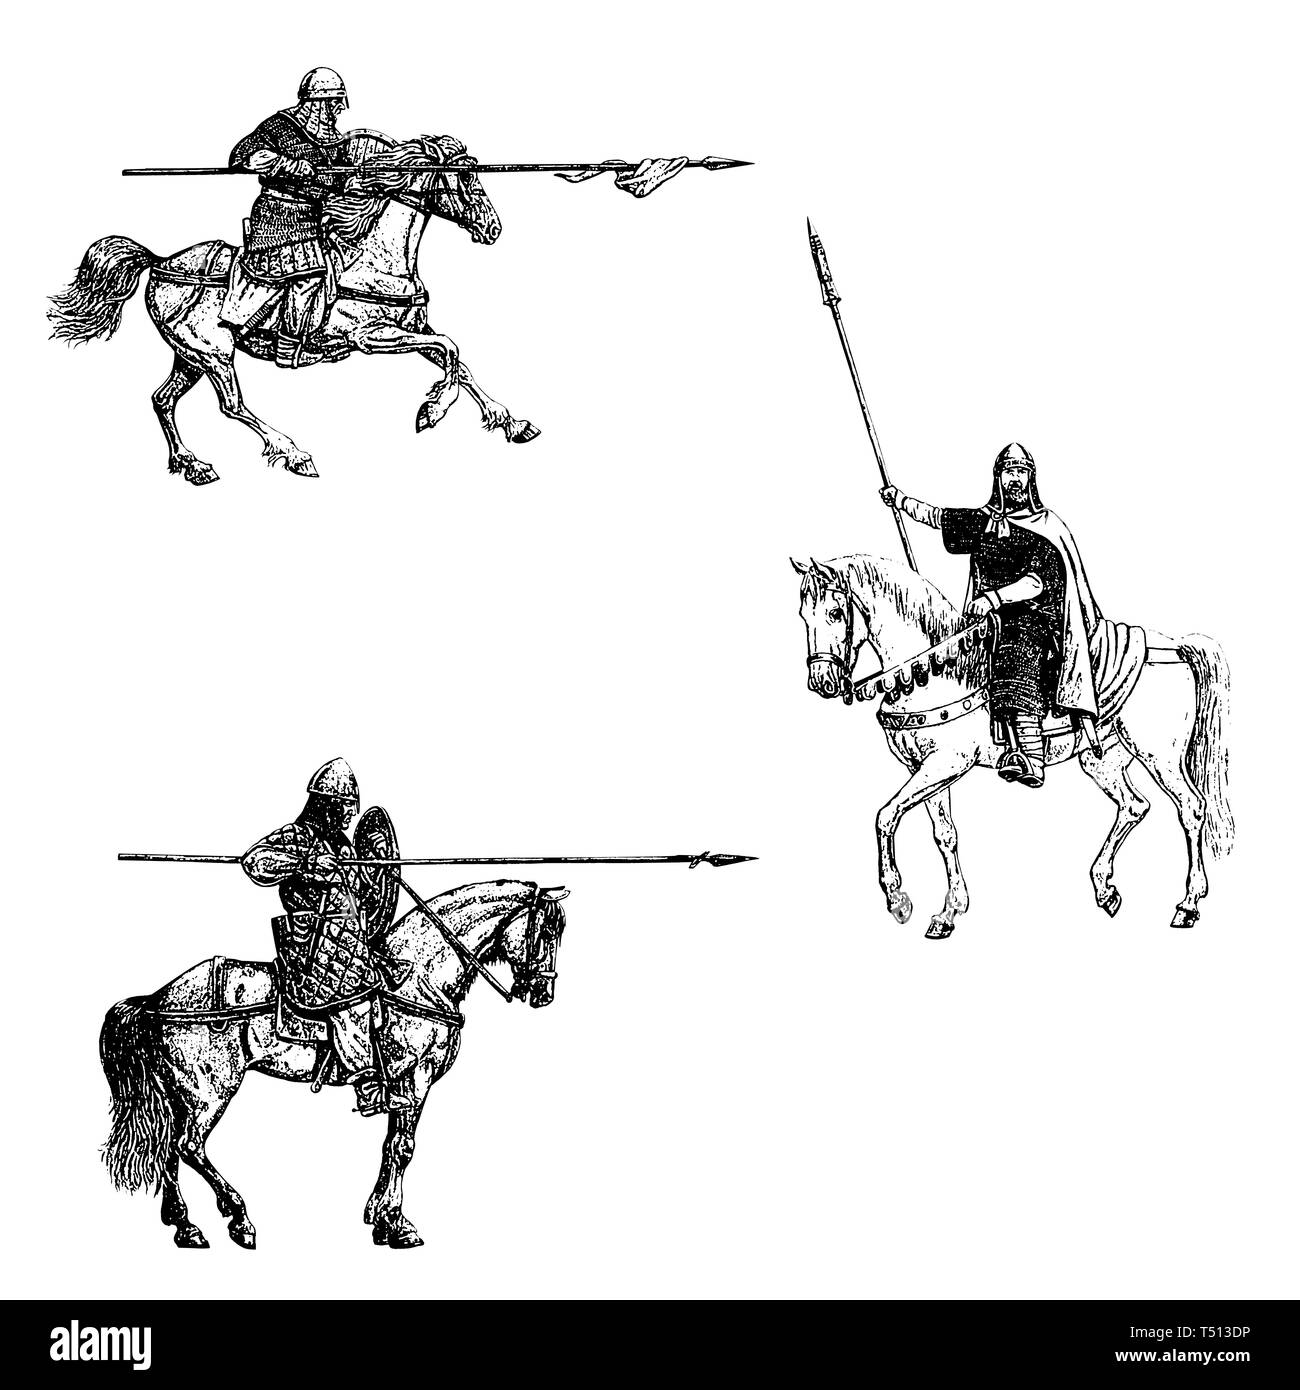 Medieval mounted knights illustration. Knight on horseback. Set of 3 medieval crusaders. Black and white digital drawing. - Stock Image